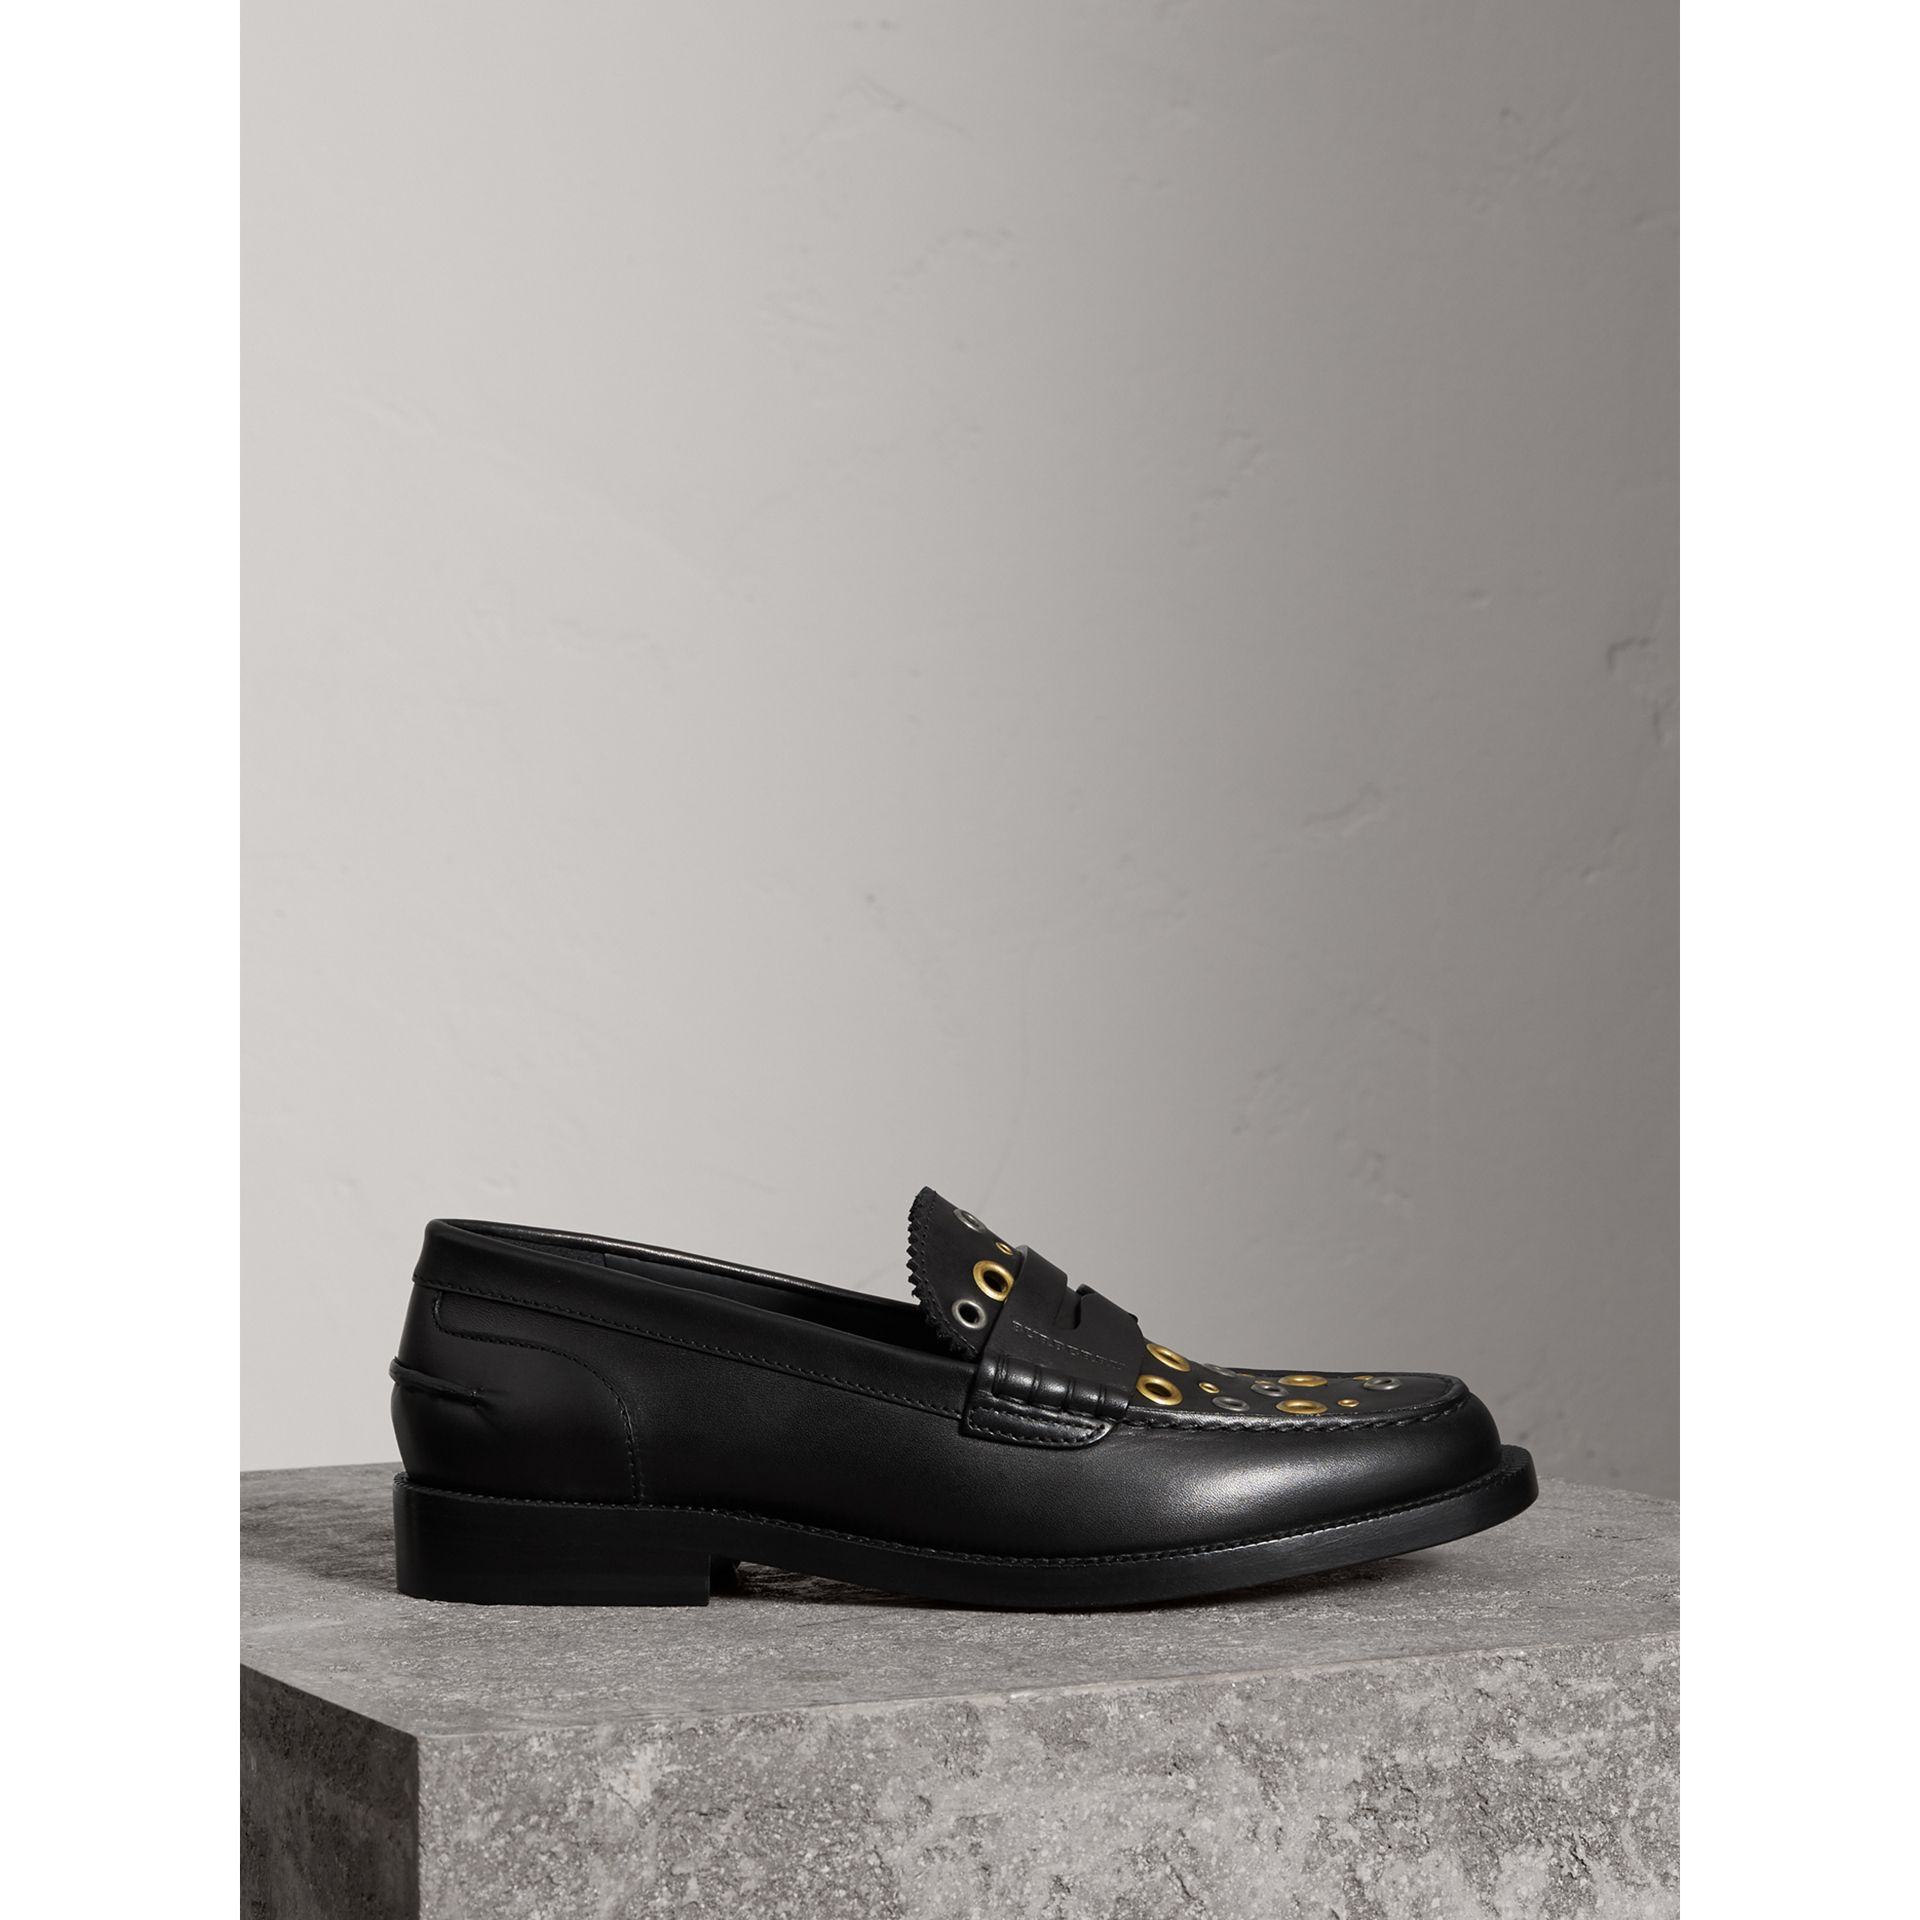 Eyelet Detail Leather Penny Loafers in Black - Women | Burberry United Kingdom - gallery image 4